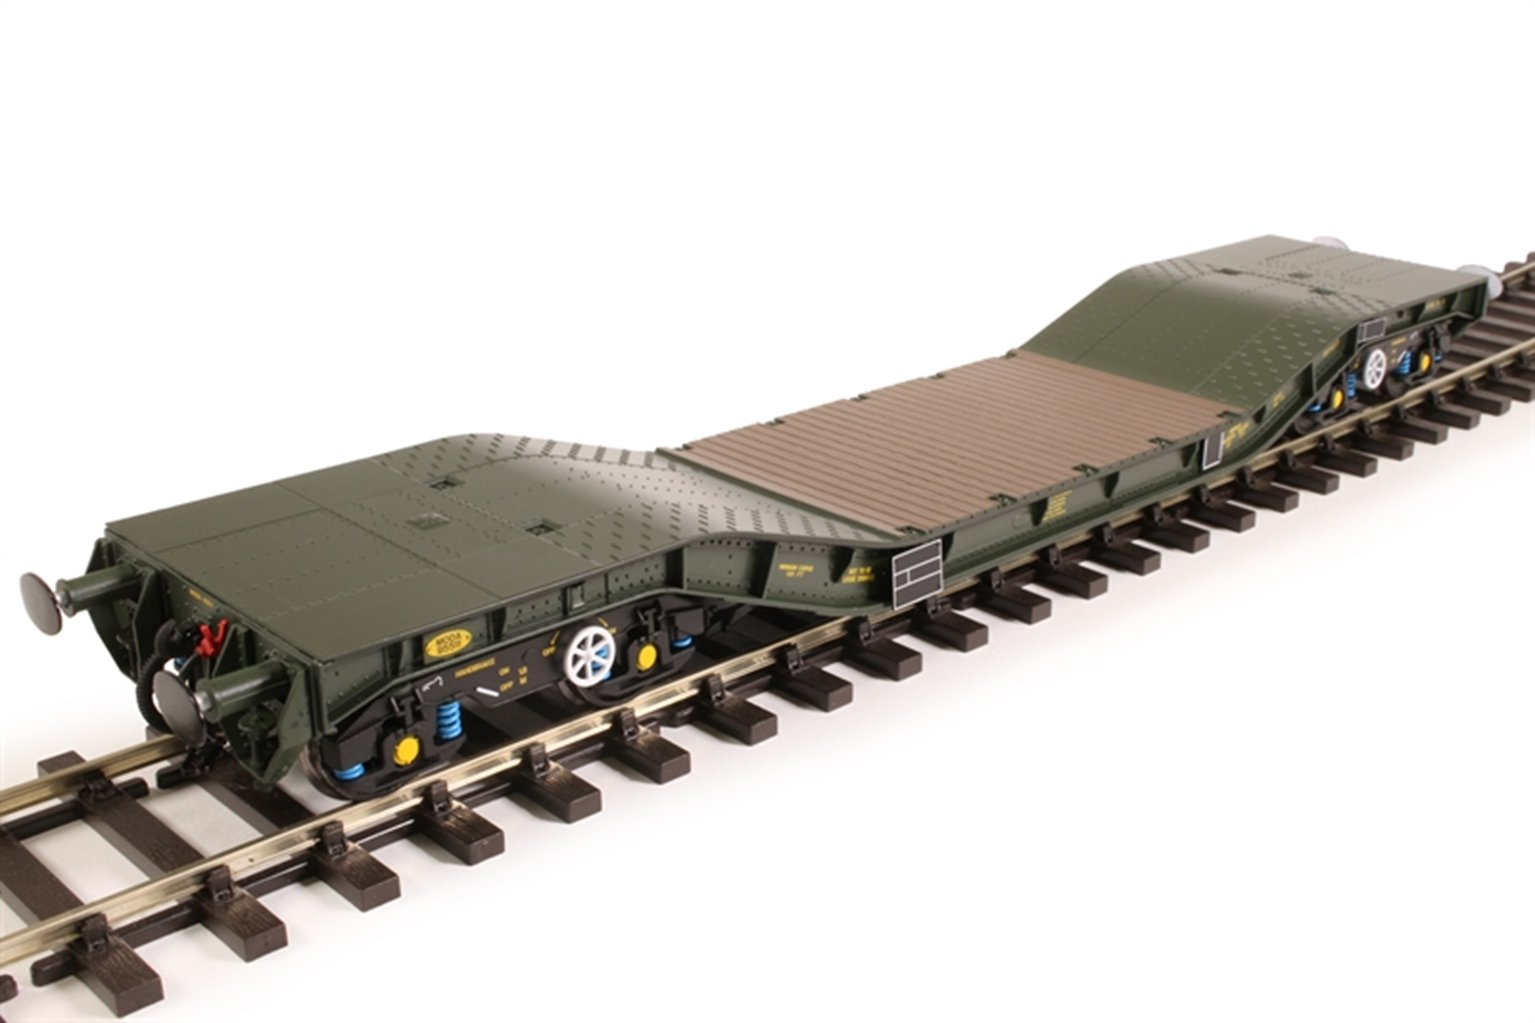 Warwell wagon 50t with Gloucester GPS bogies MODA95511 in MOD 1970s olive